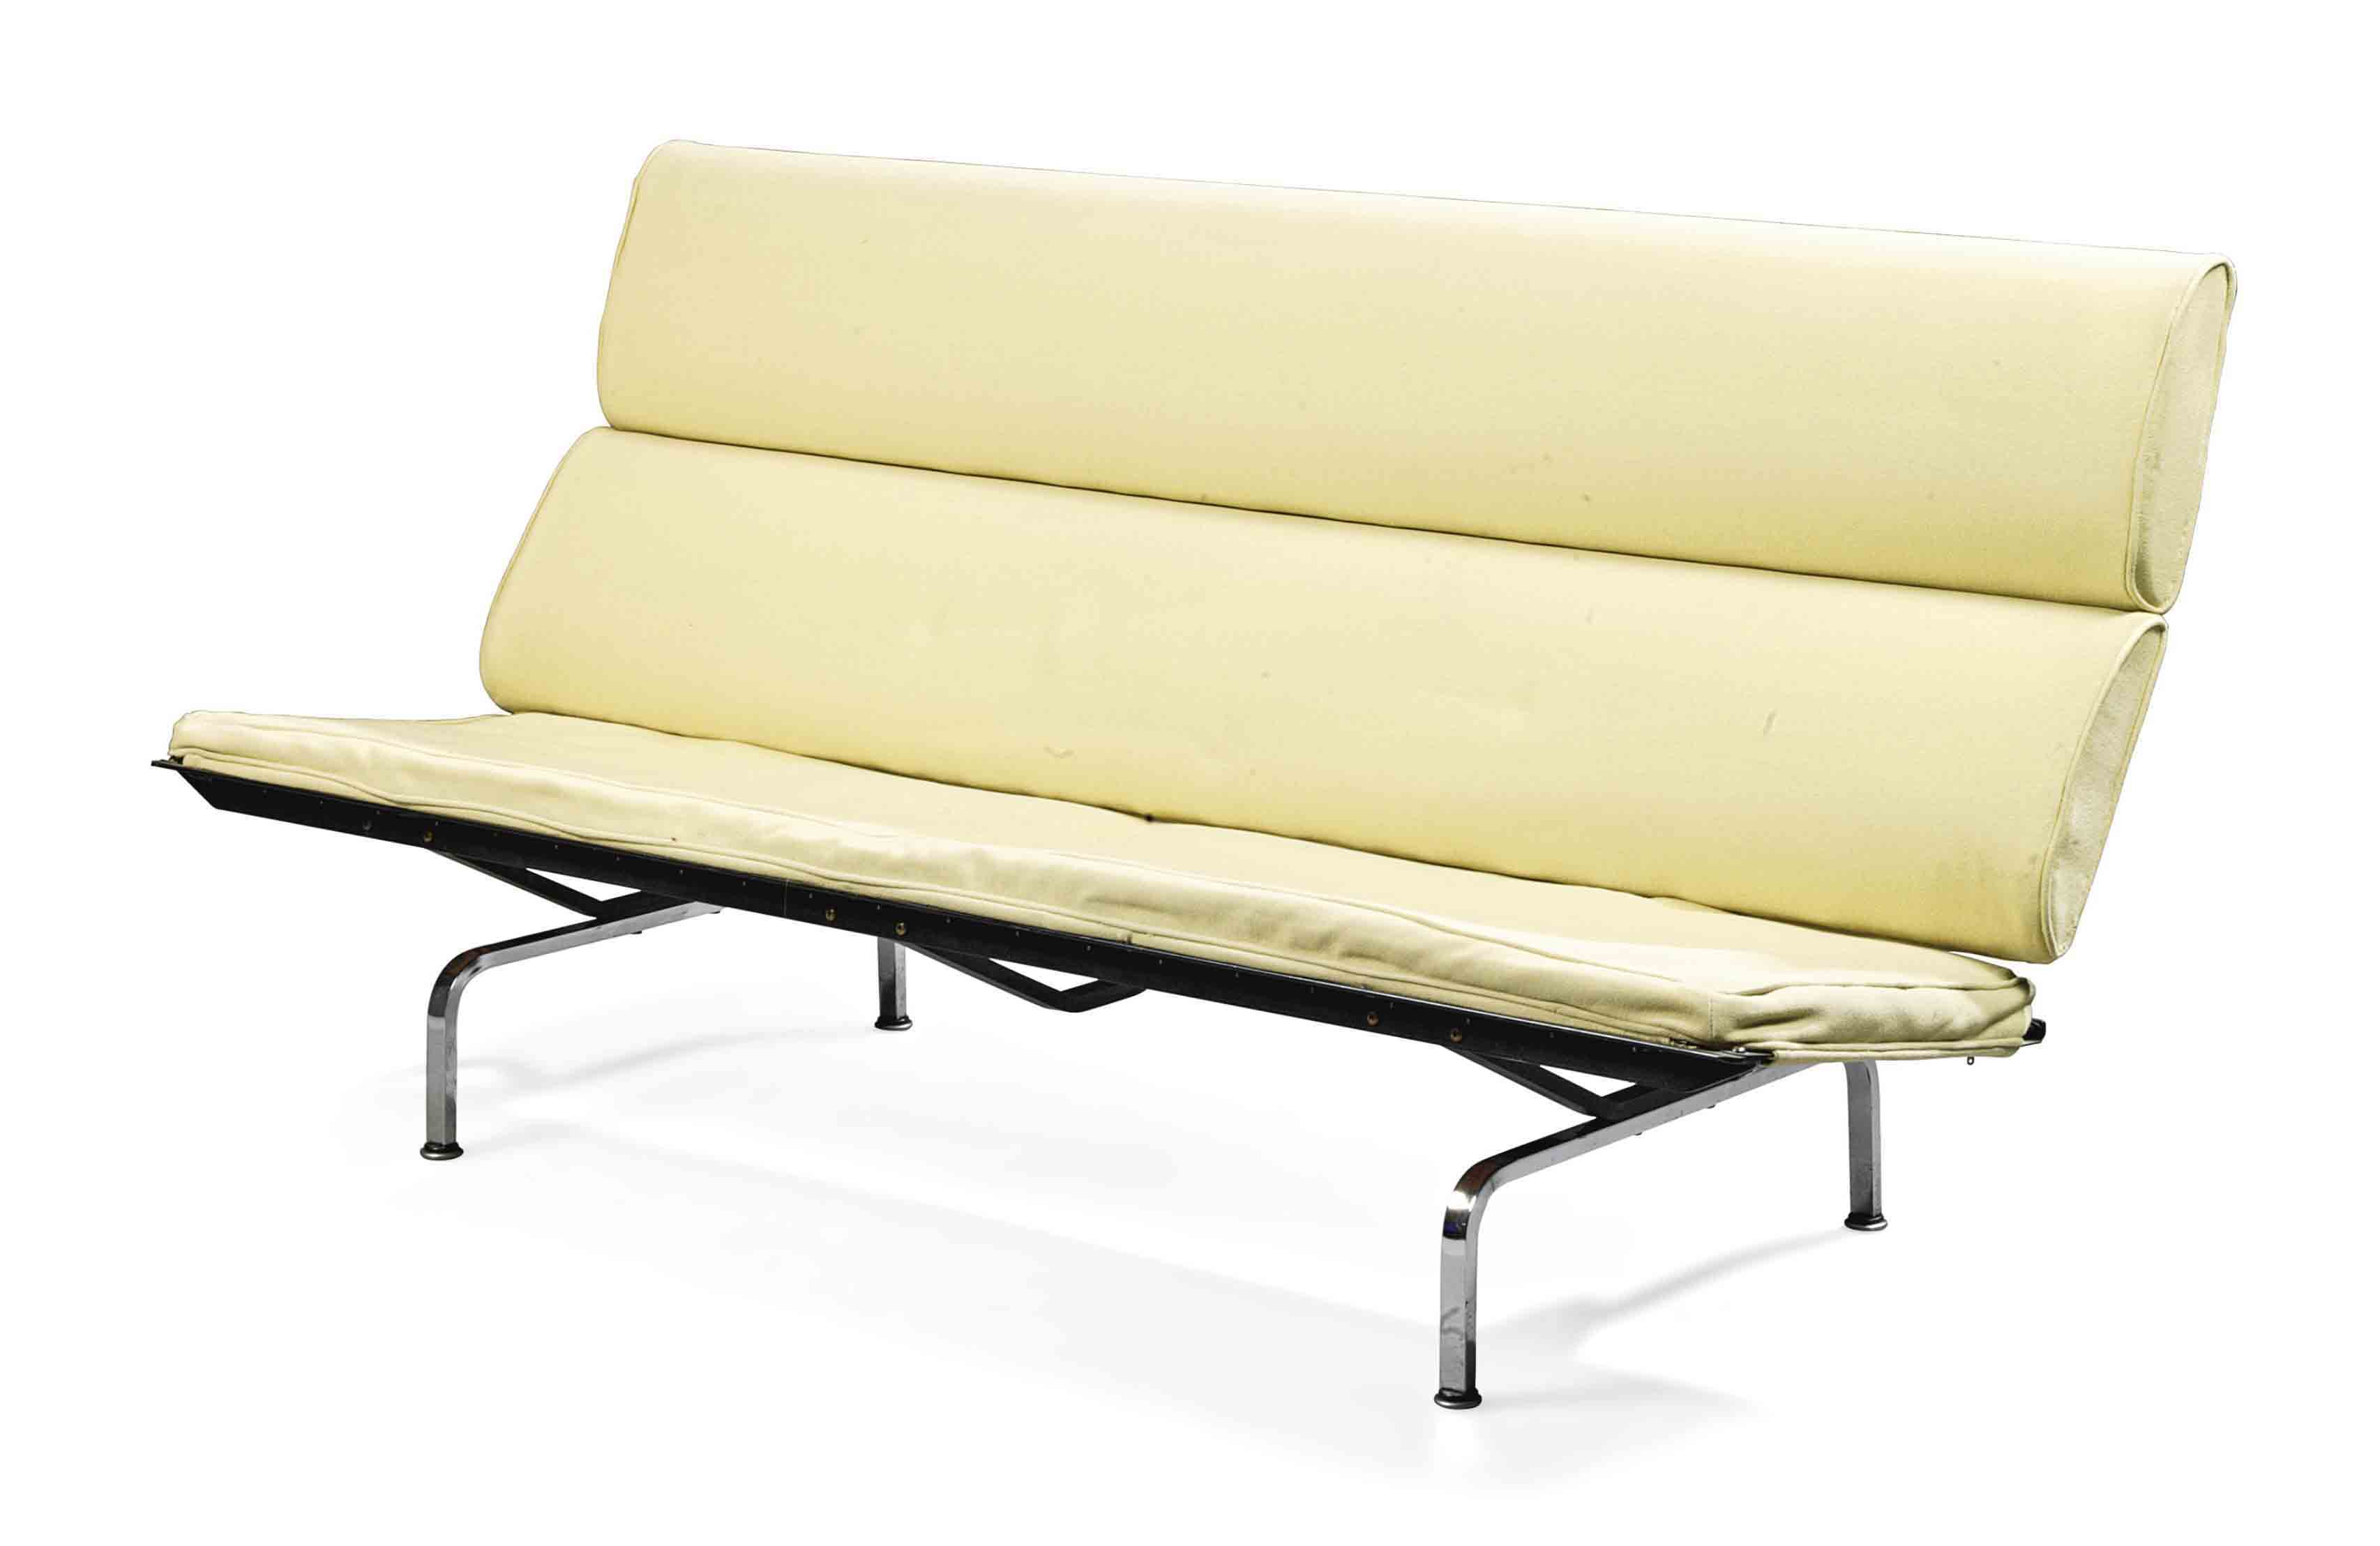 A CHARLES U0026 RAY EAMES U0027SOFA CO